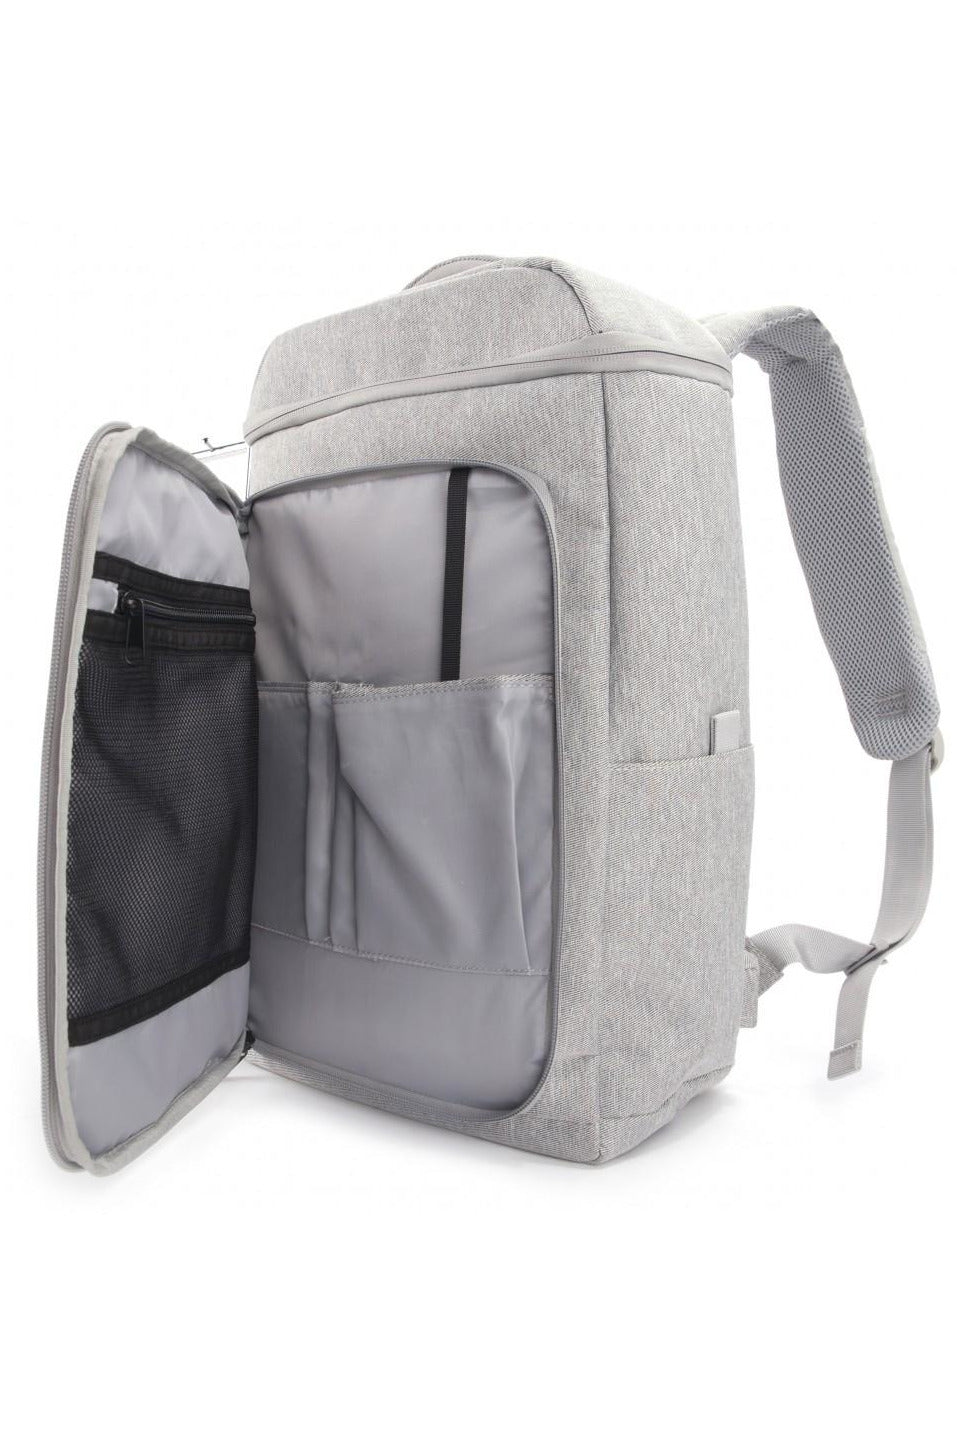 Philo Smart Backpack for 15-InchLaptop, Integrated USB Charging Port - Light Grey - www.emarketkw.com